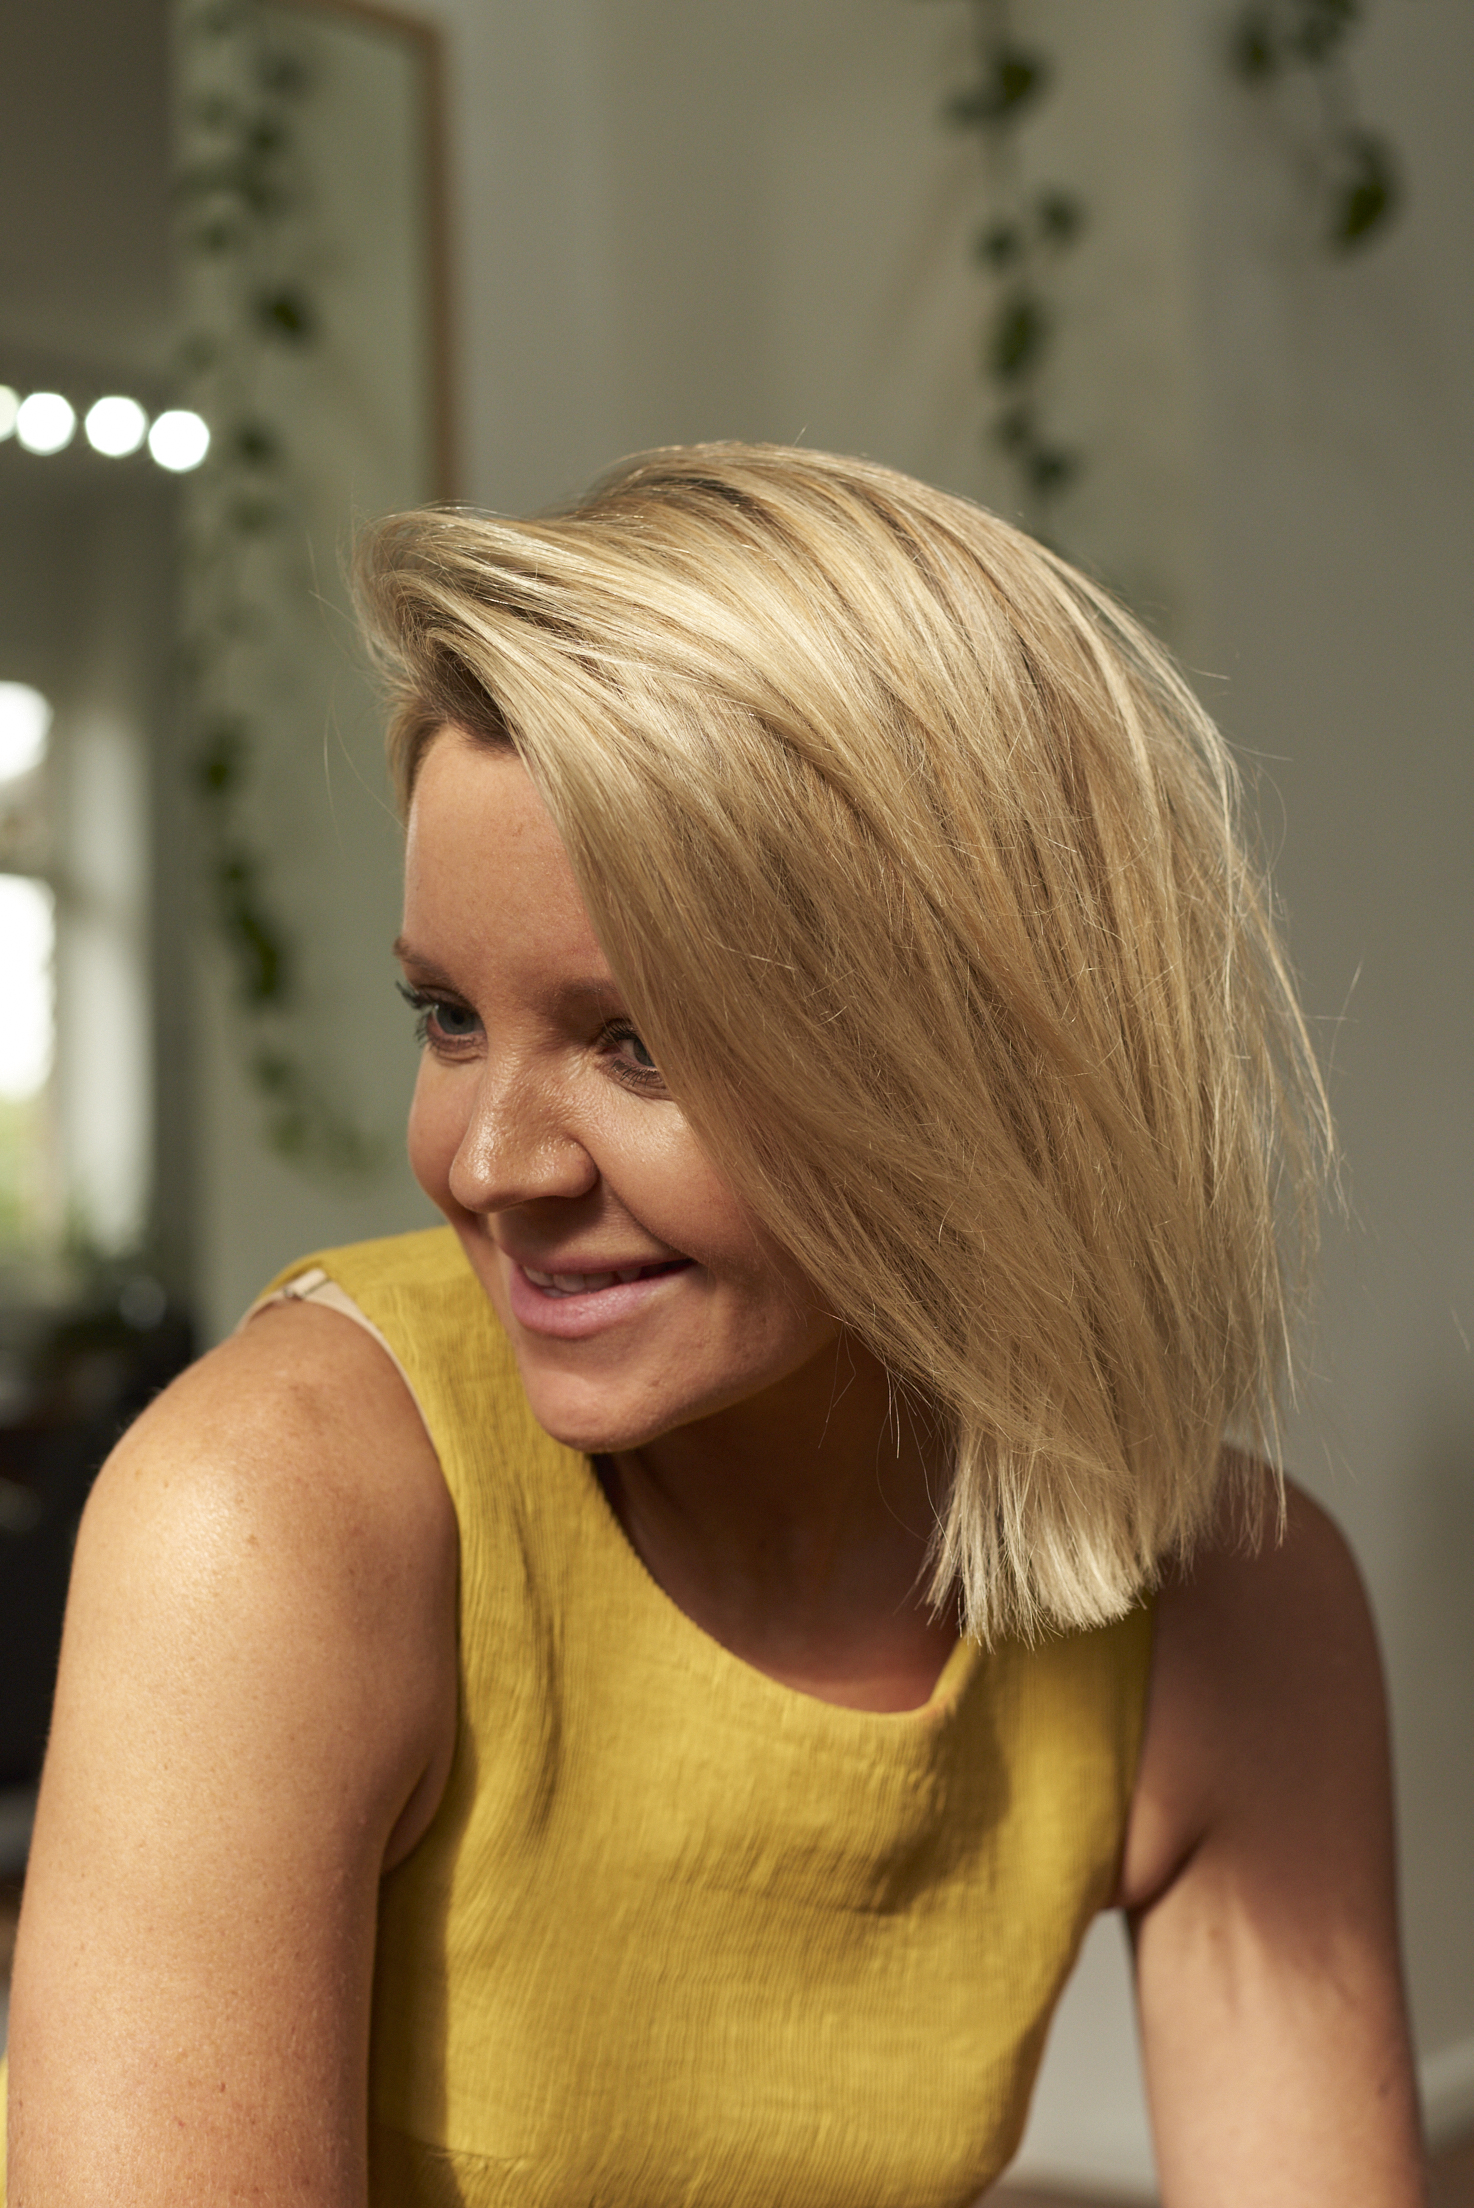 KATE MANION  SENIOR STYLIST  Working in hair salons through London, Sydney and Melbourne, Kate has settled in as Min. Studio as a part-time Senior Stylist. Understated, calm and inspired by music, Kate is drawn to creating natural looks with colour and complimenting cuts. Highly experienced in sharp and structured cutting, Kate livens our space through her warm conversation and sense of humour.   @kate_manion